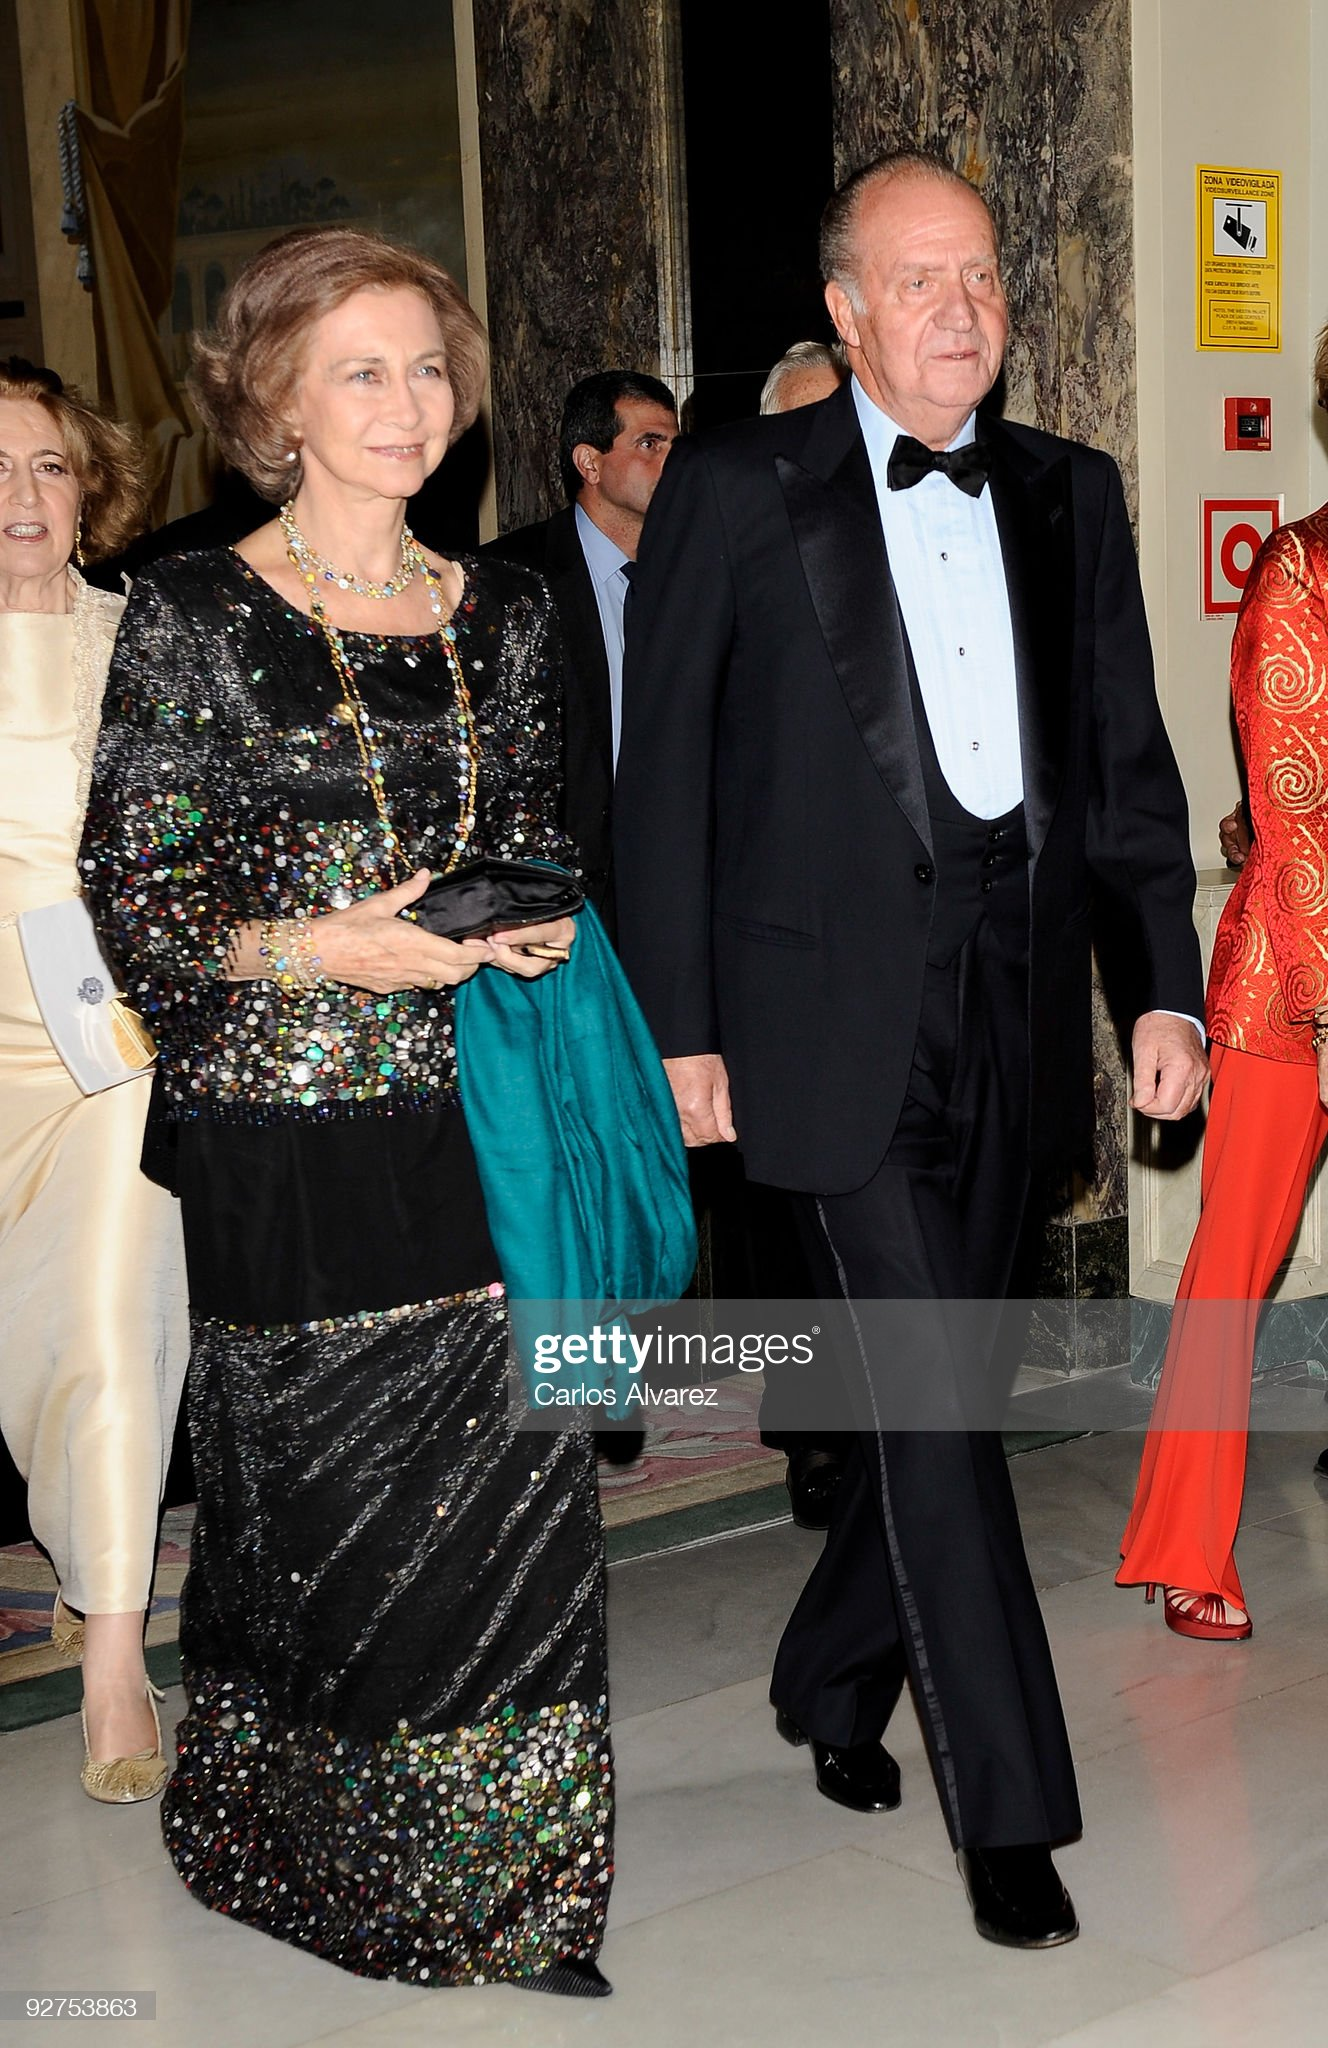 Spain's Royals Attend 'El Mundo' Newspaper 20th Anniversary Party : News Photo